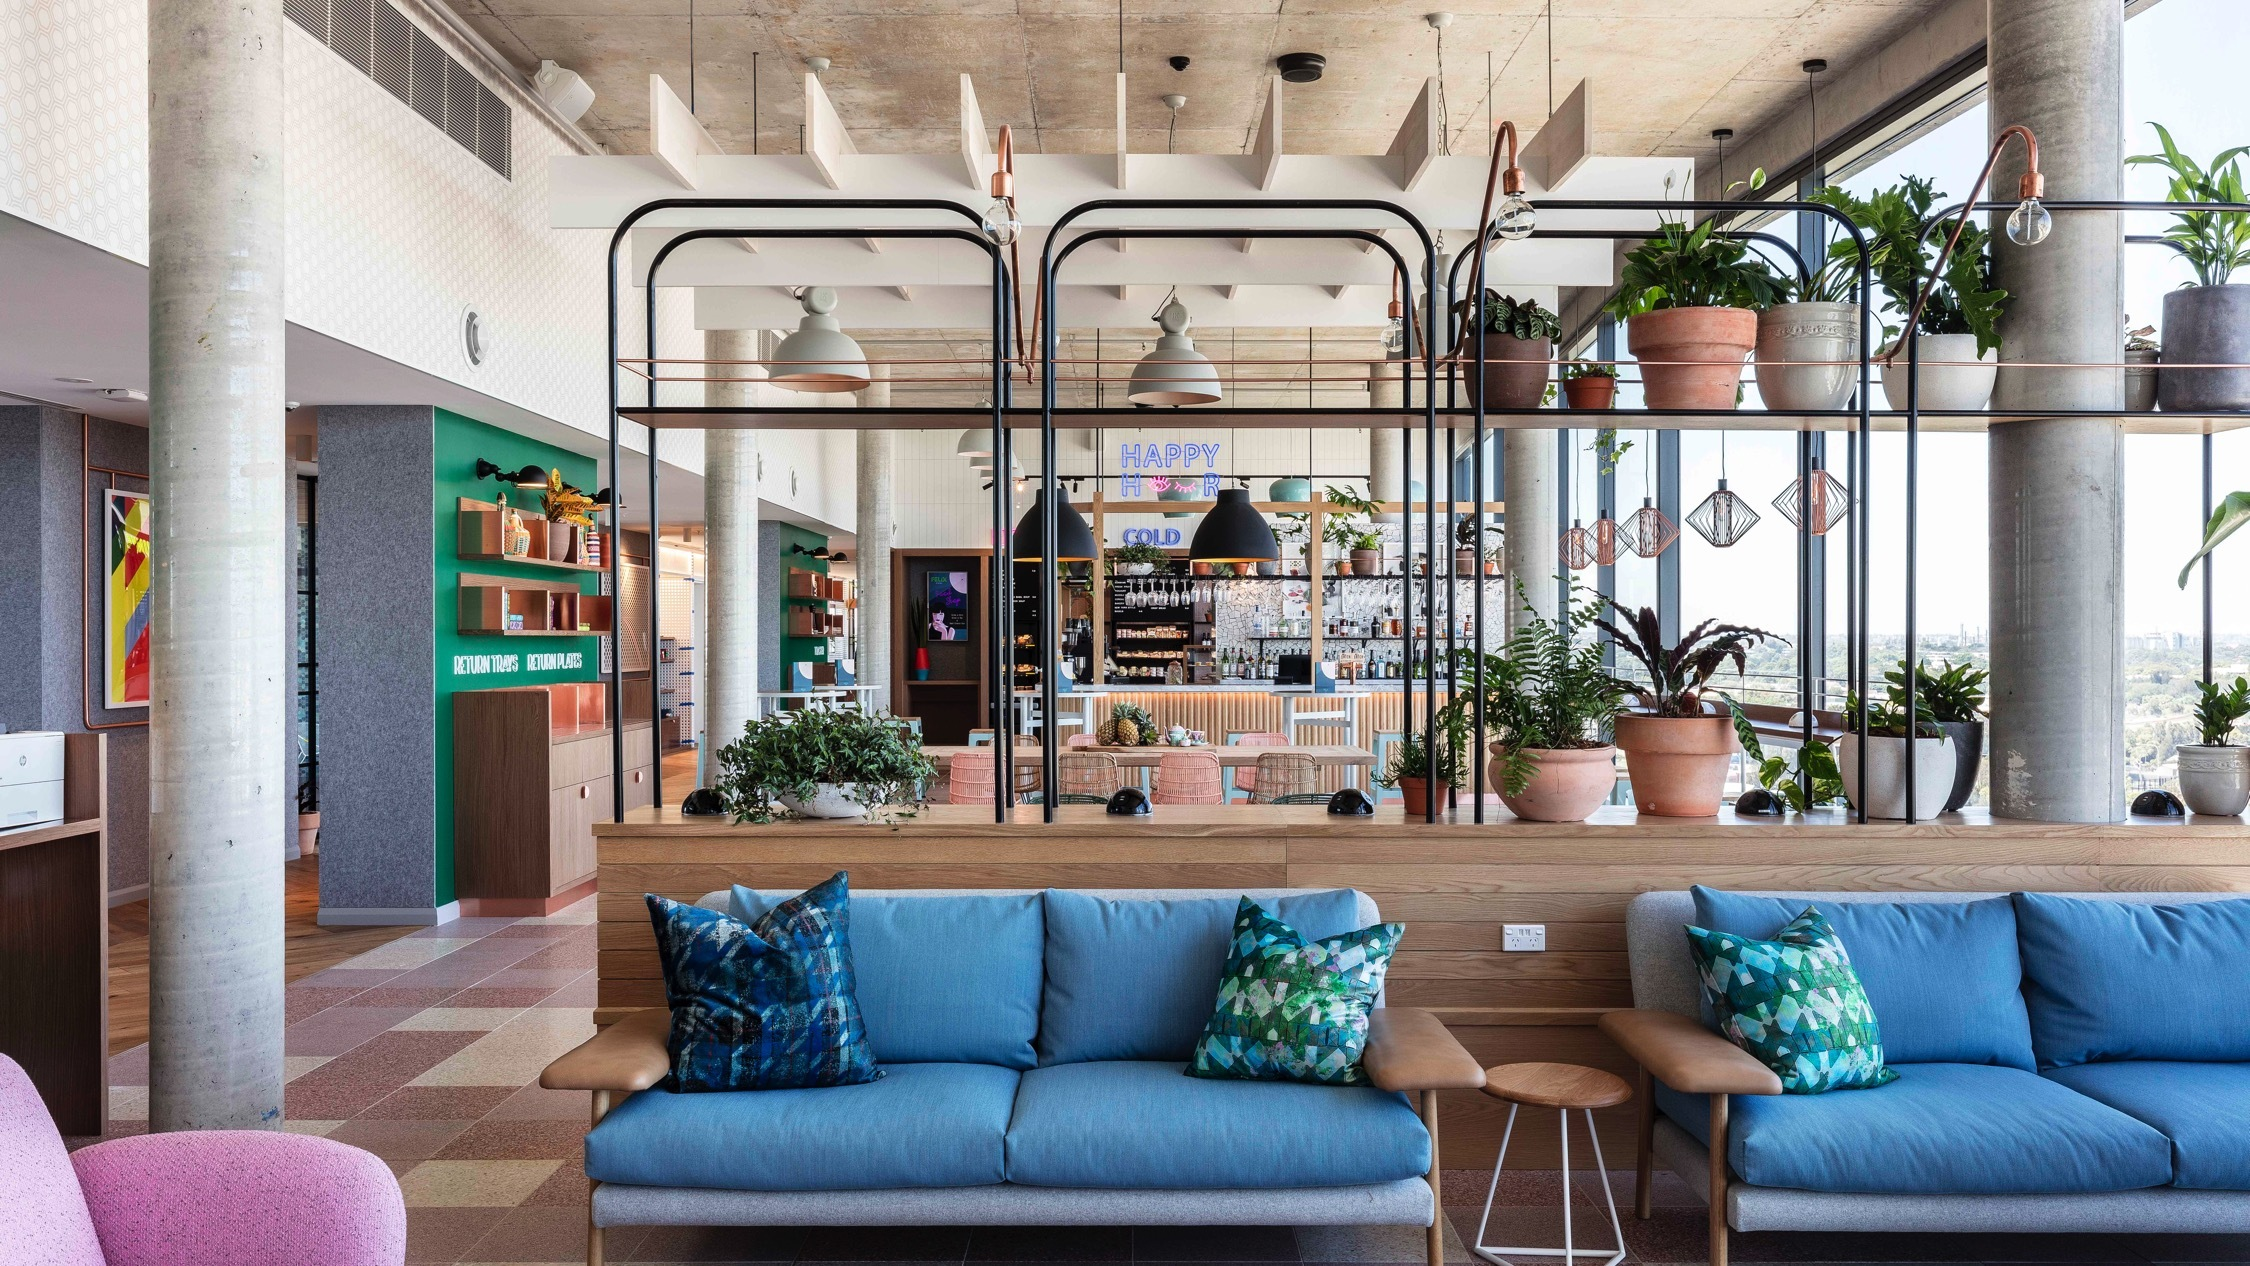 The best hotels near Sydney airport